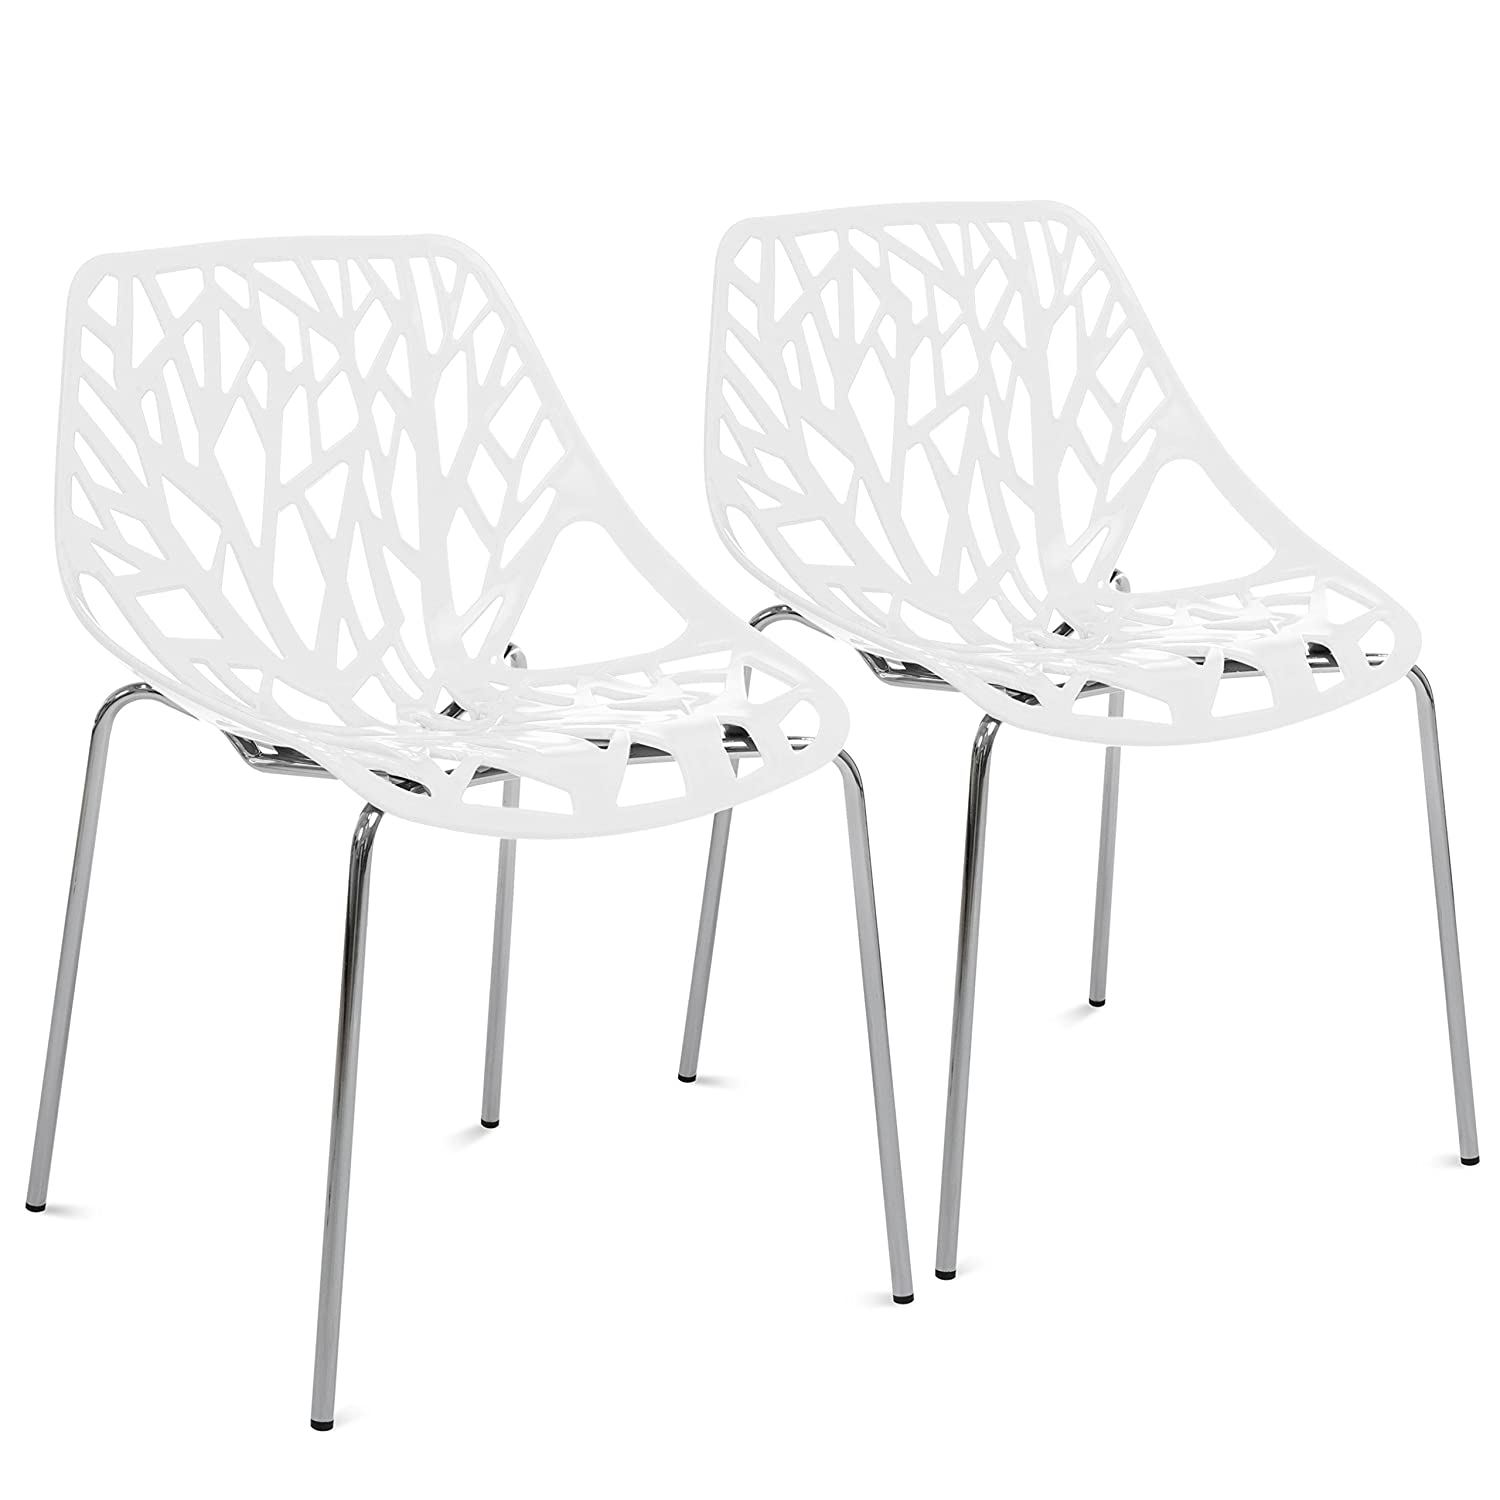 Best Choice Products Set of 2 Mid-Century Modern Eames Style Stenciled Dining Side Chairs w Chrome-Plated Legs – White